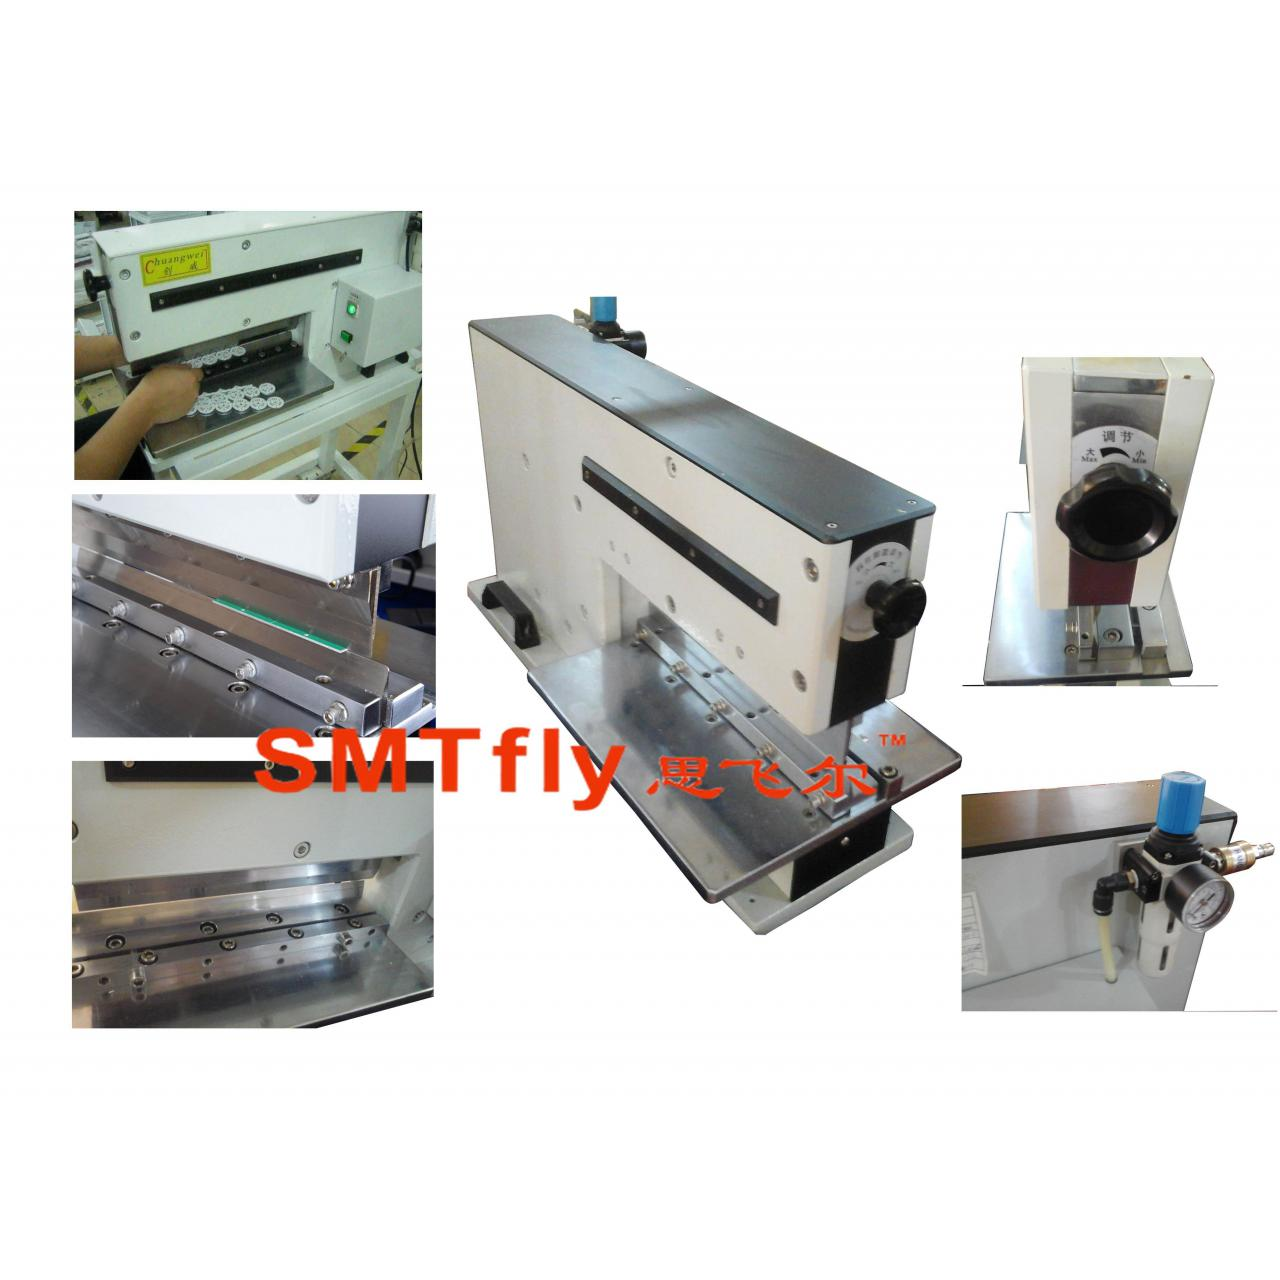 Buy cheap PCB separator pcb cutters,SMTfly-200J from wholesalers